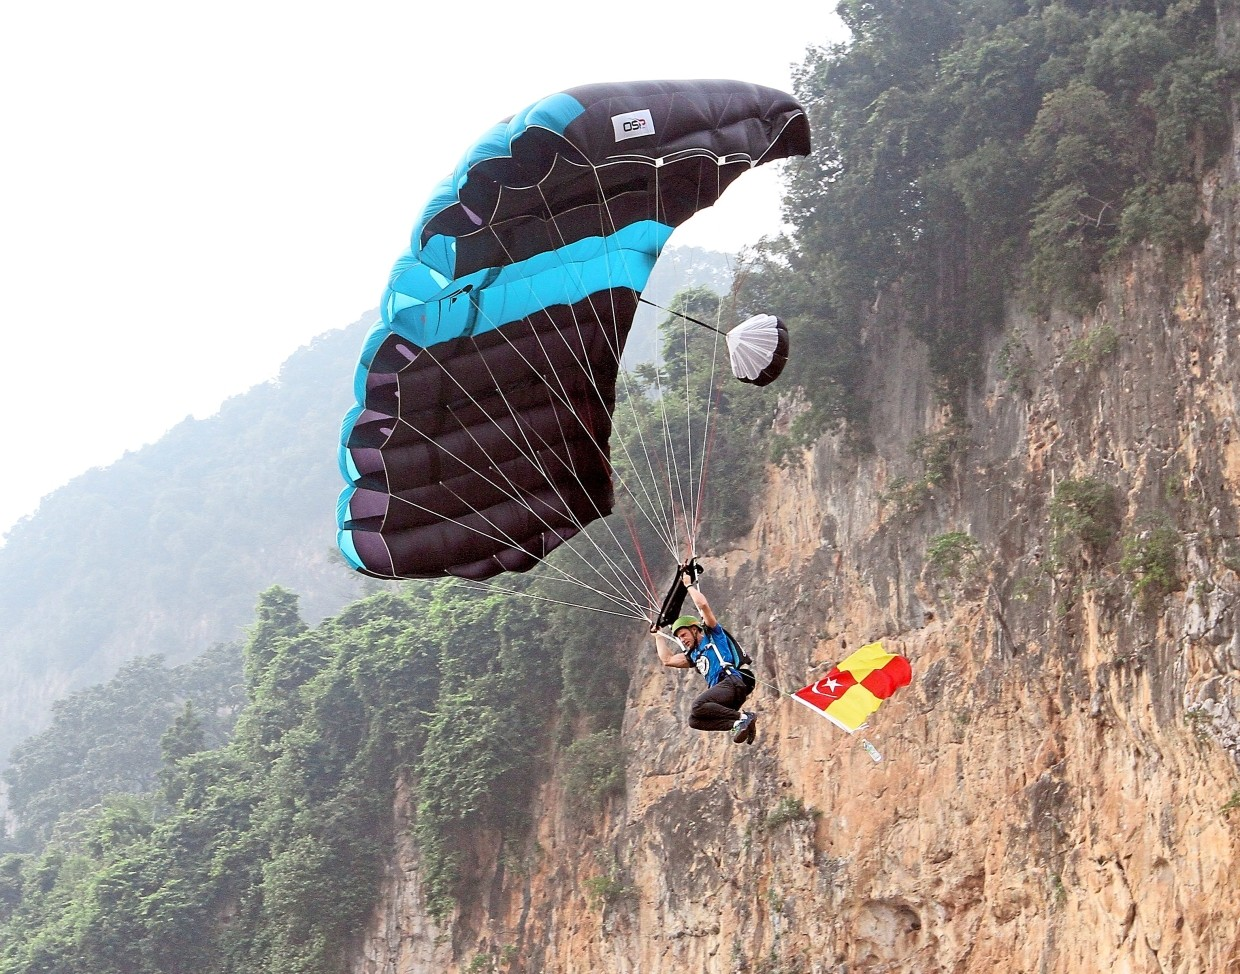 A participant making the jump with a Selangor flag as part of Malaysia Day celebrations.